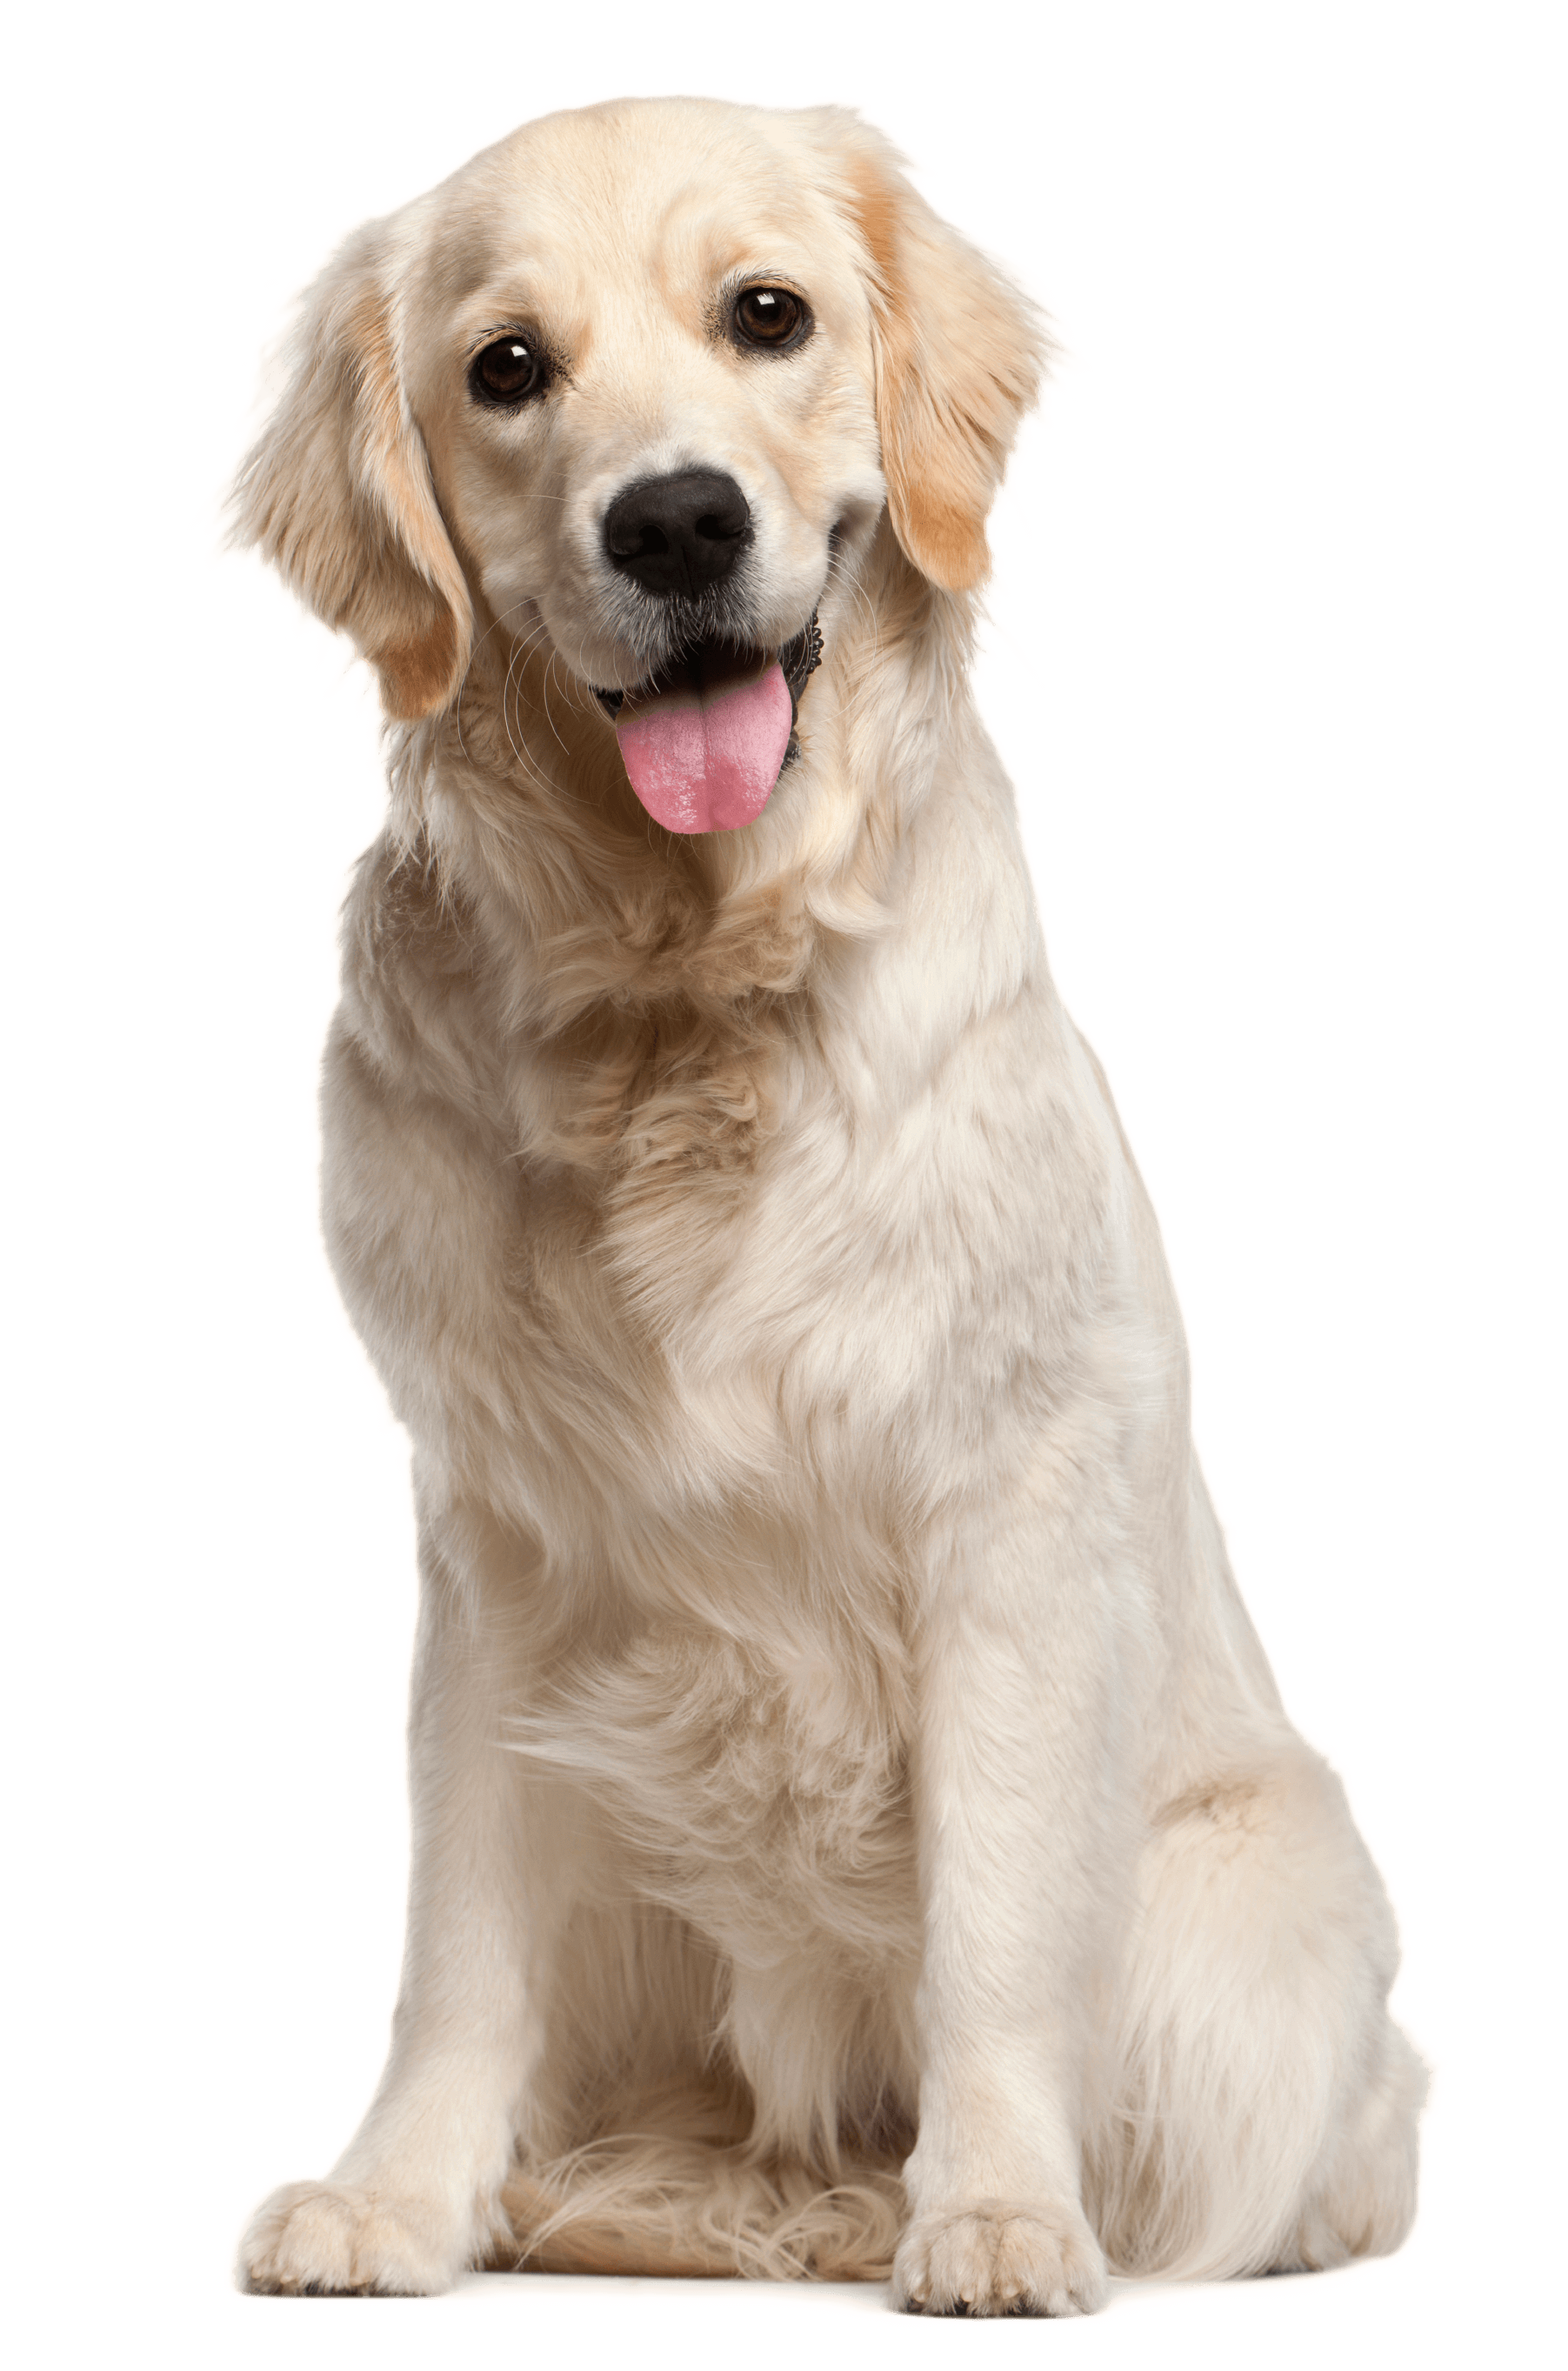 Dog PNG File - Golden Retriever PNG